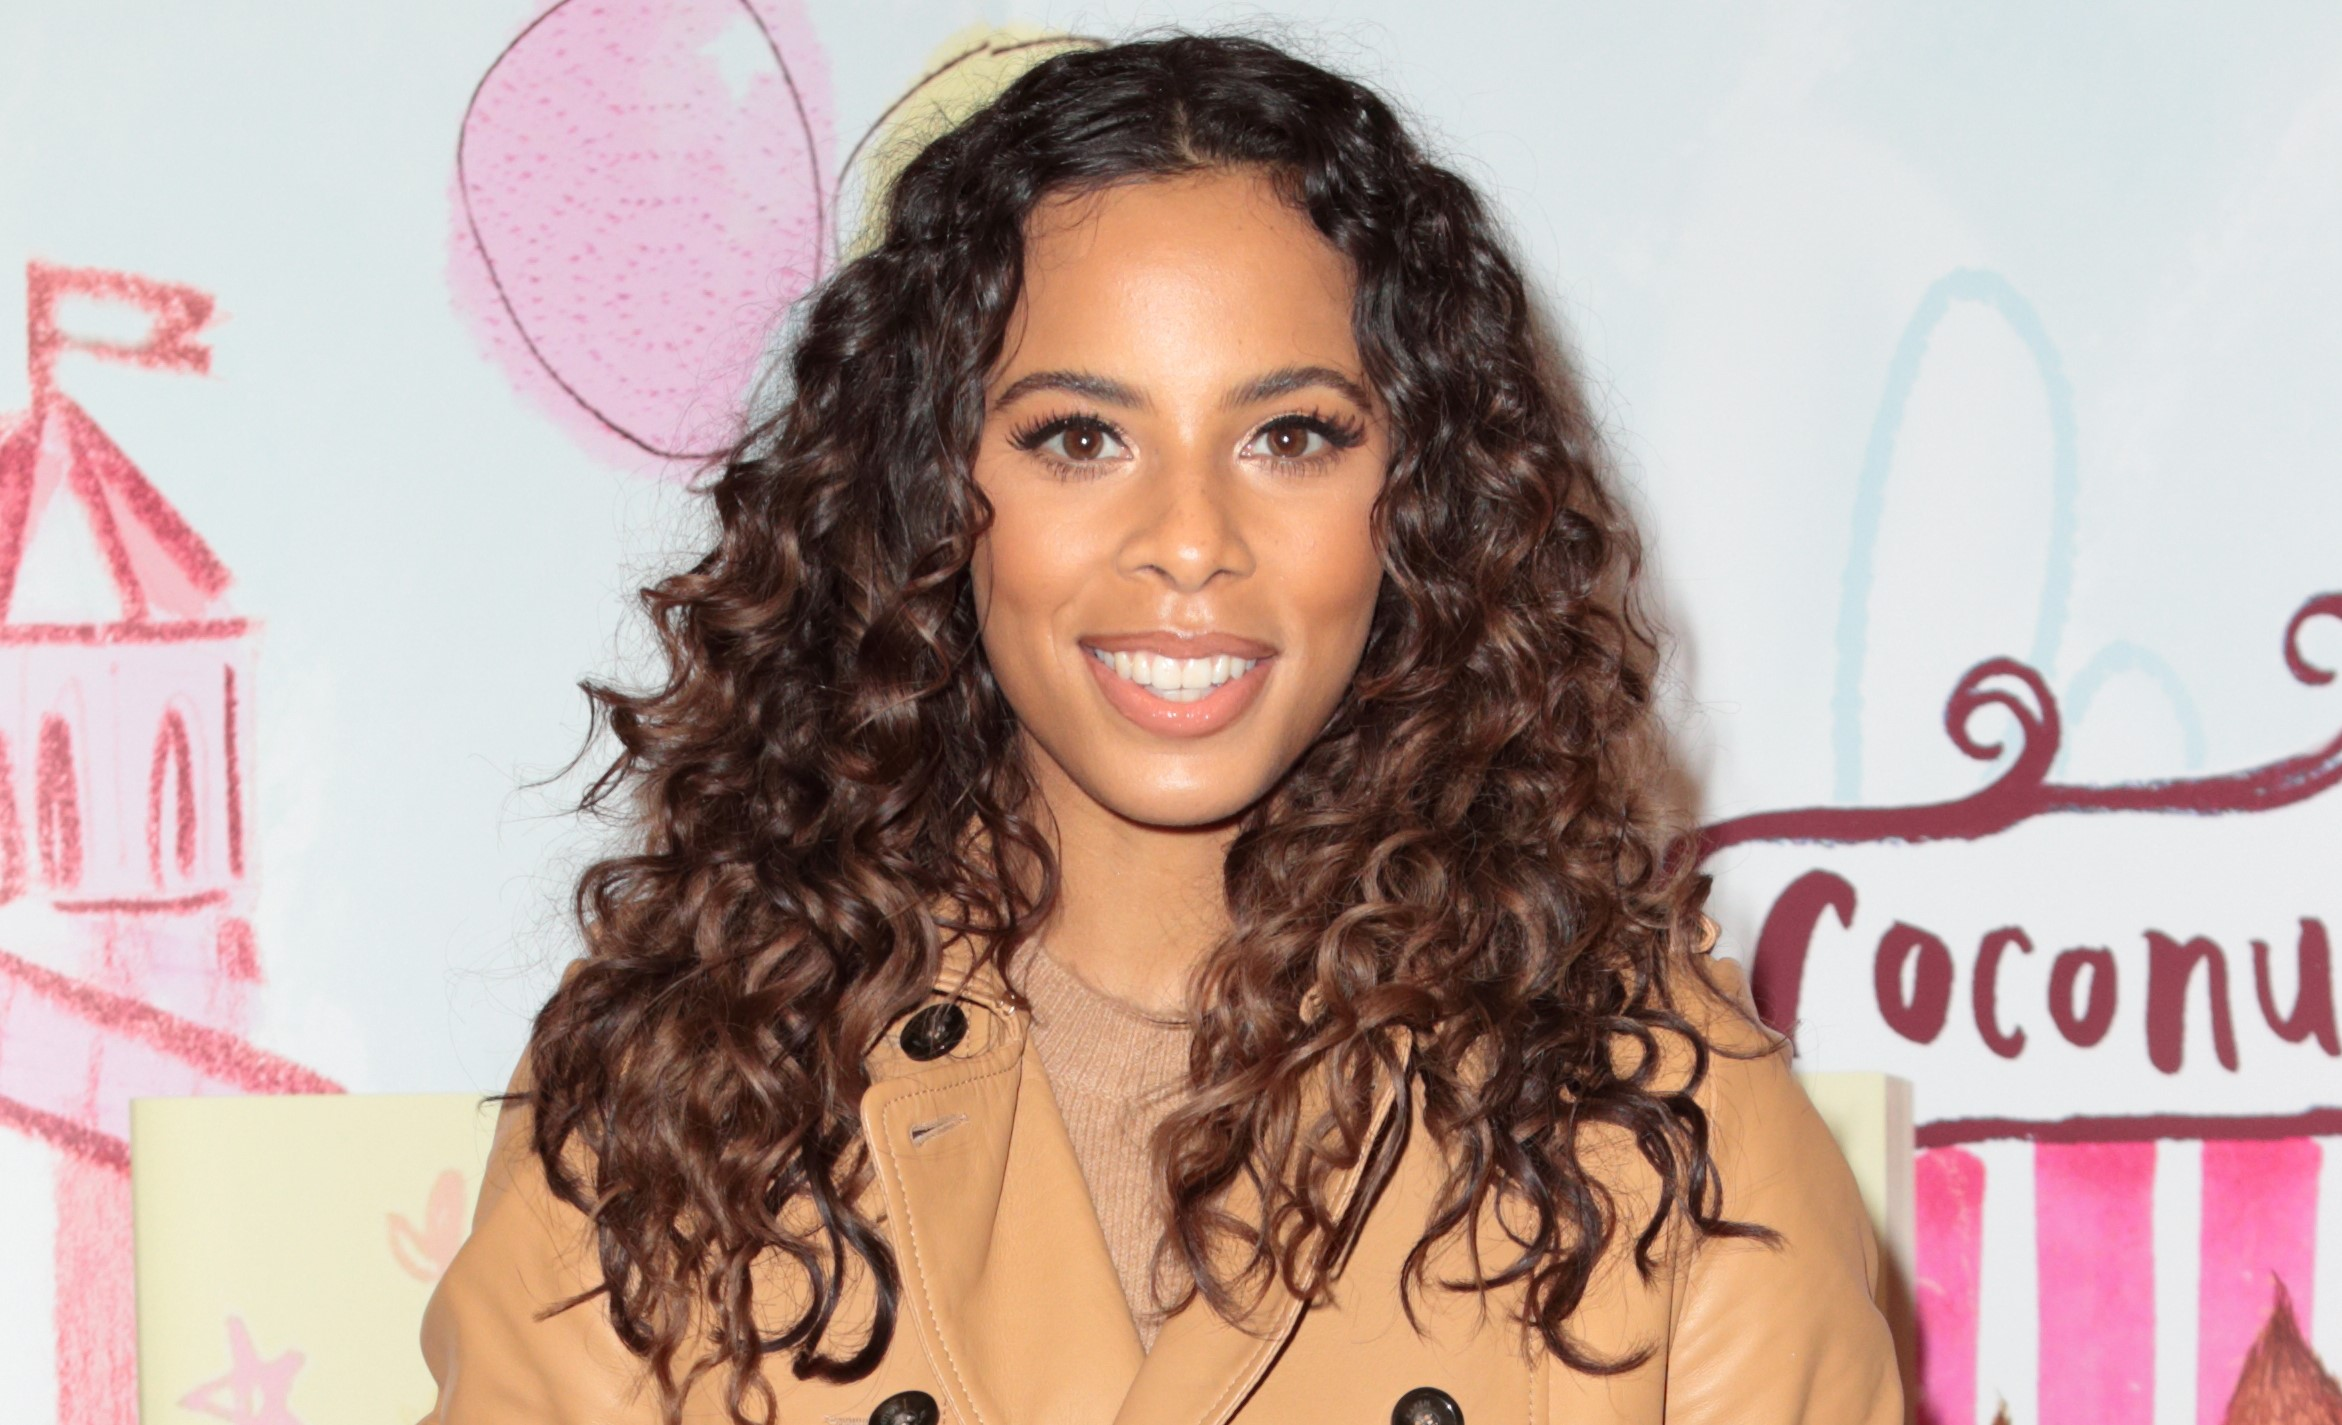 Rochelle Humes throws lavish birthday celebrations for daughter Alaia-Mai